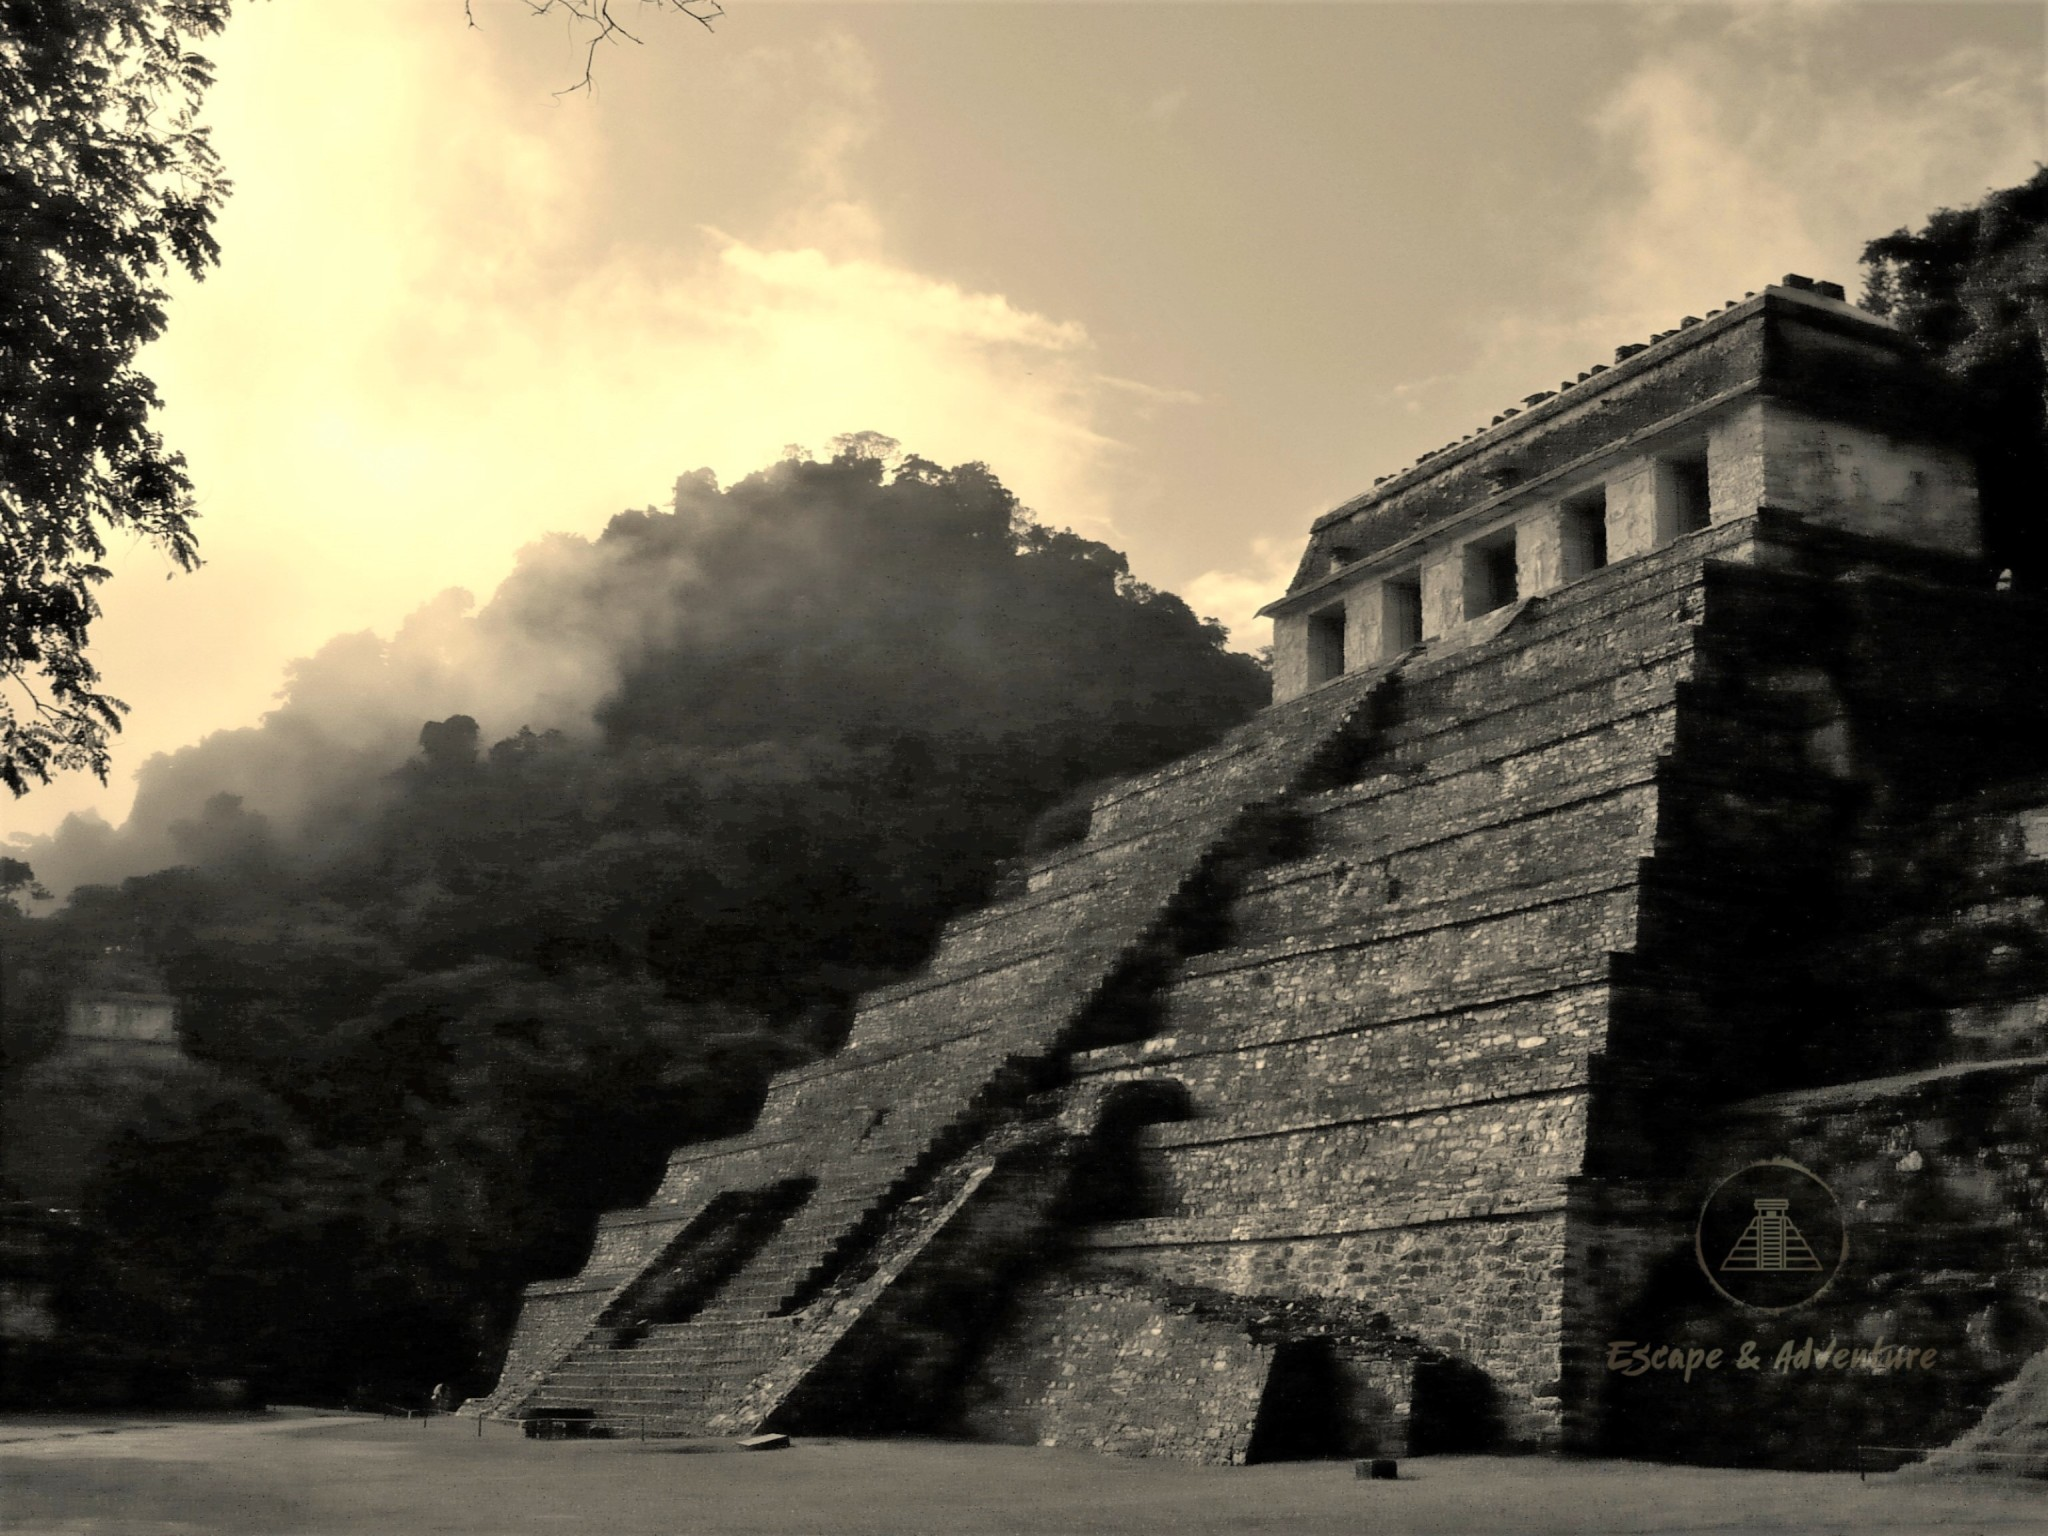 Atmospheric ruined Mayan pyramid at Palenque, Mexico set against a background of misty jungle.